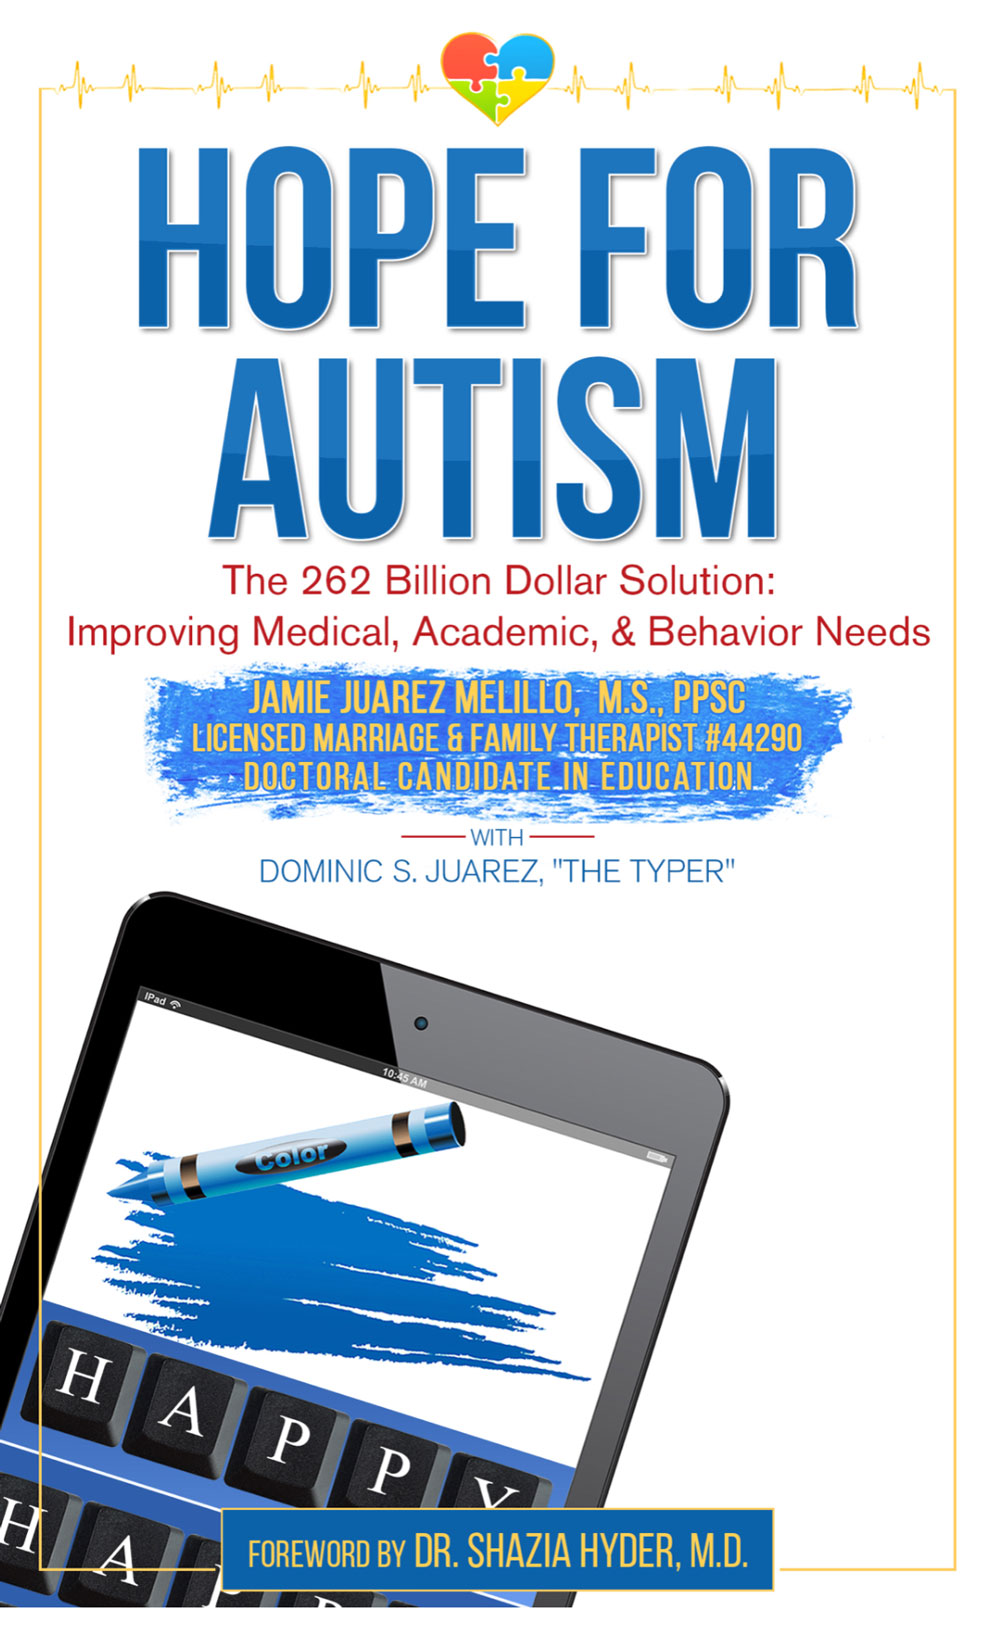 Hope-For-Autism-Book-Cover